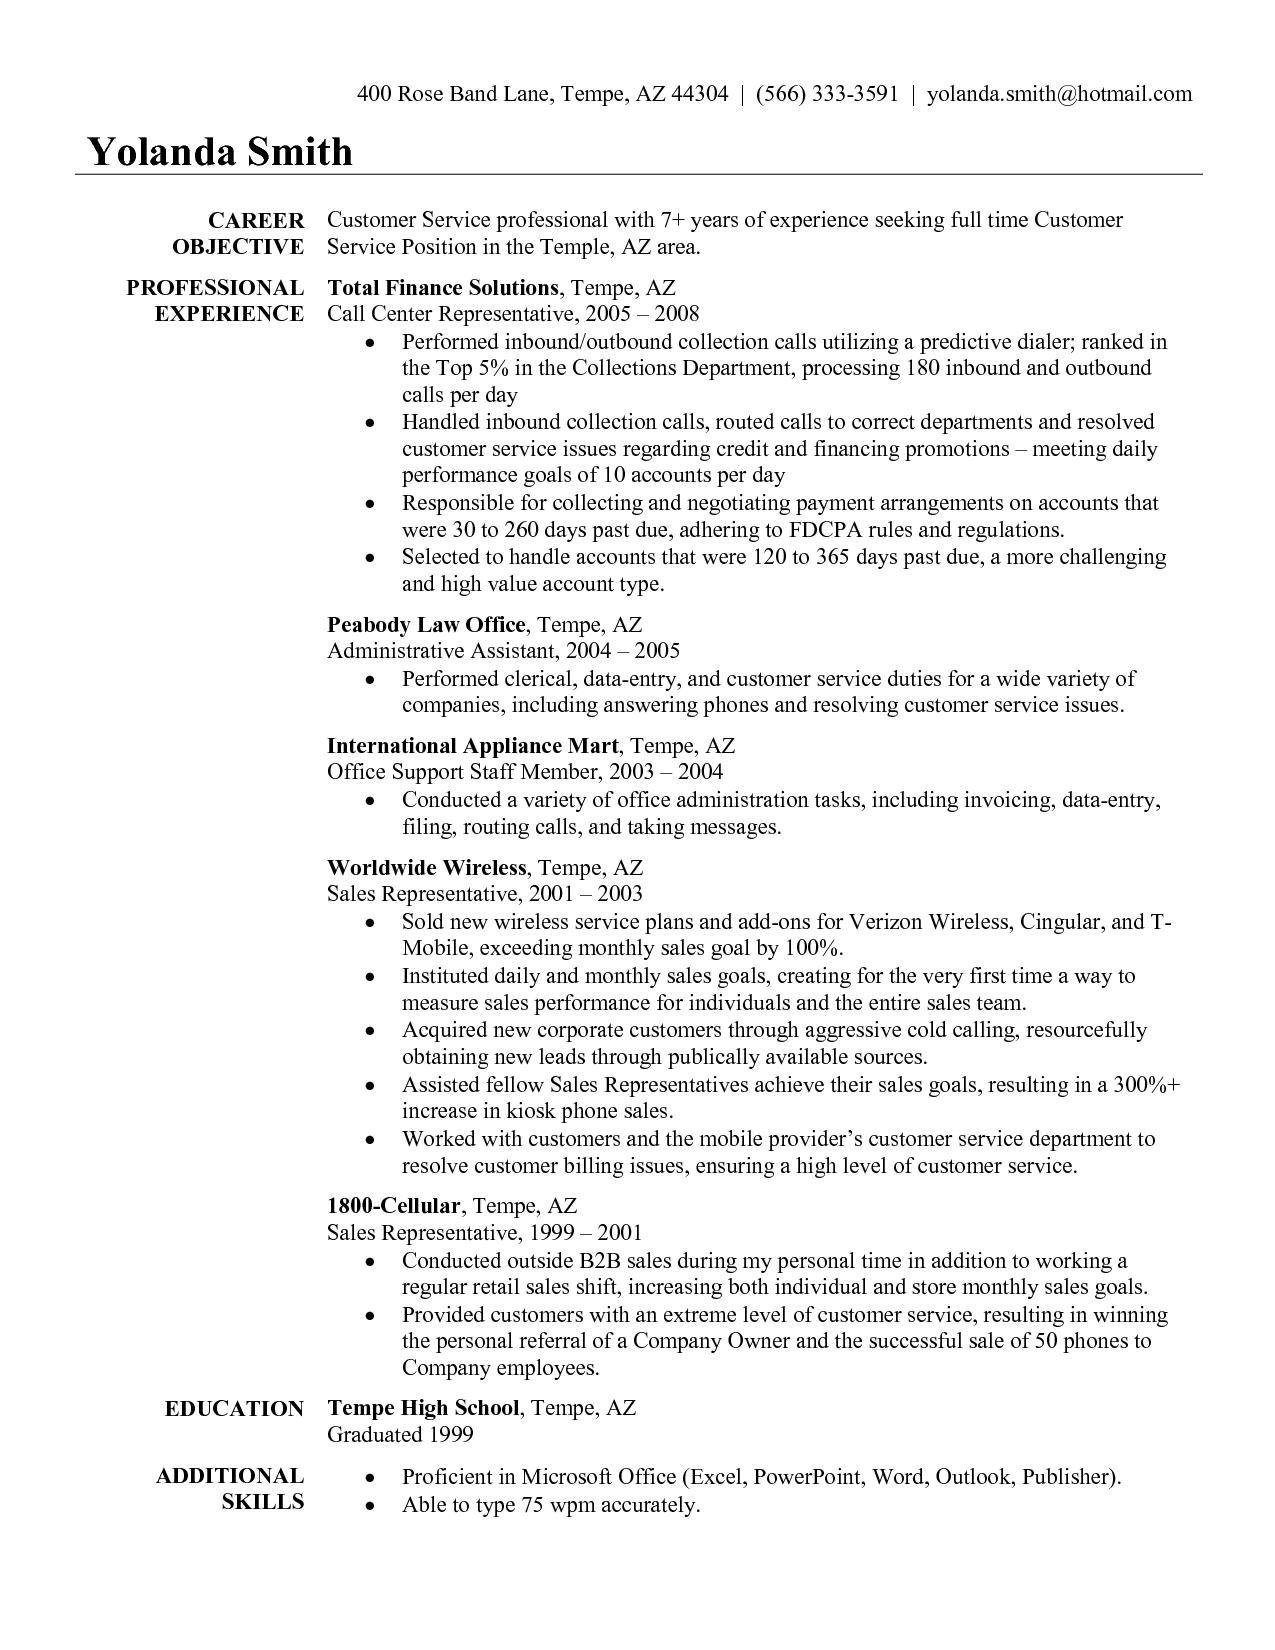 resume objective for customer service representative - Objective For Resume For Customer Service